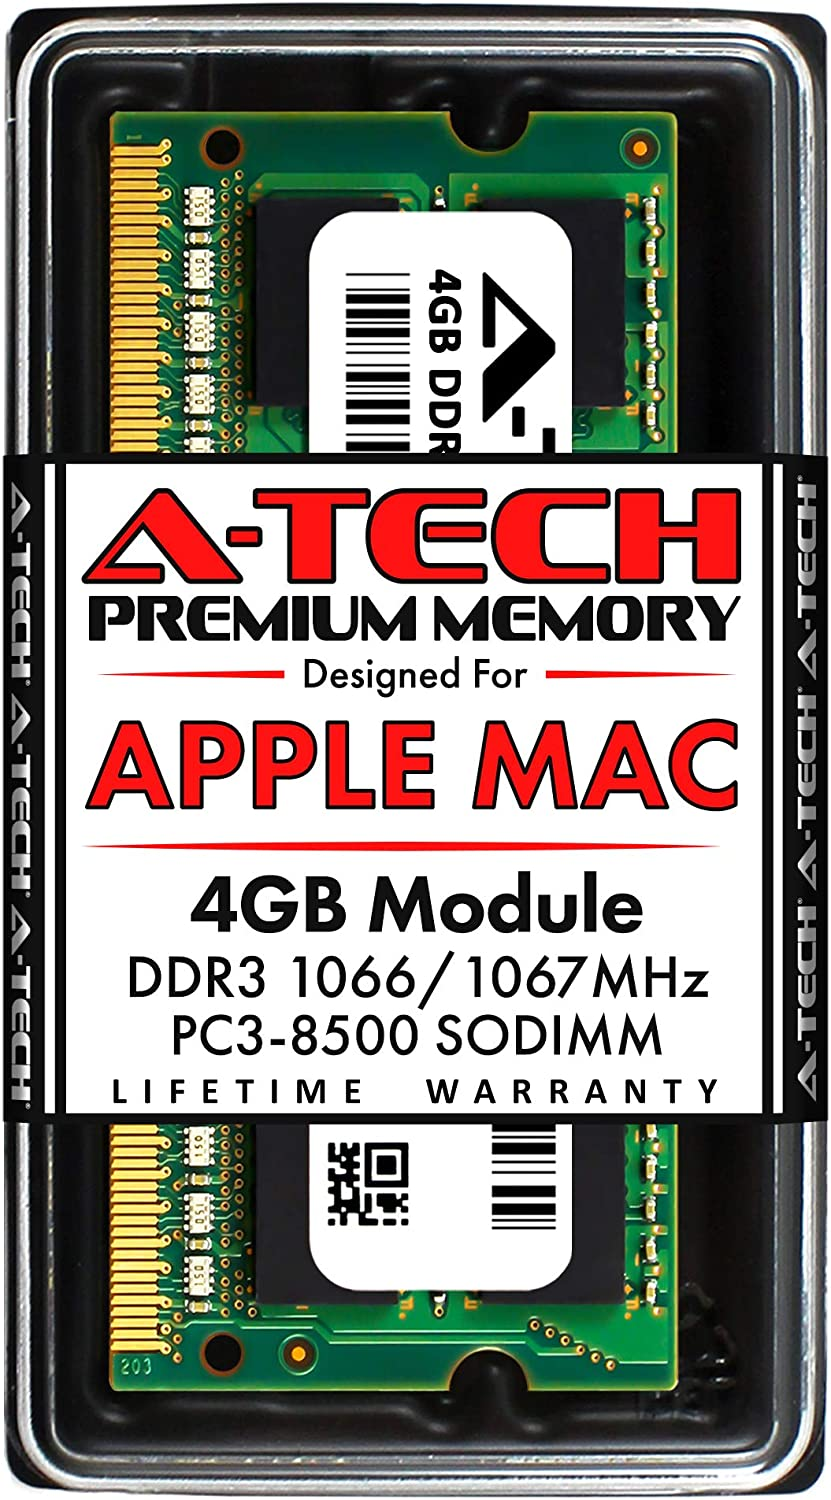 A-Tech 4GB DDR3 1066MHz / 1067MHz SODIMM PC3-8500 RAM for Apple MacBook, MacBook Pro, iMac, Mac Mini (Late 2008, Early/Mid/Late 2009, Mid 2010)